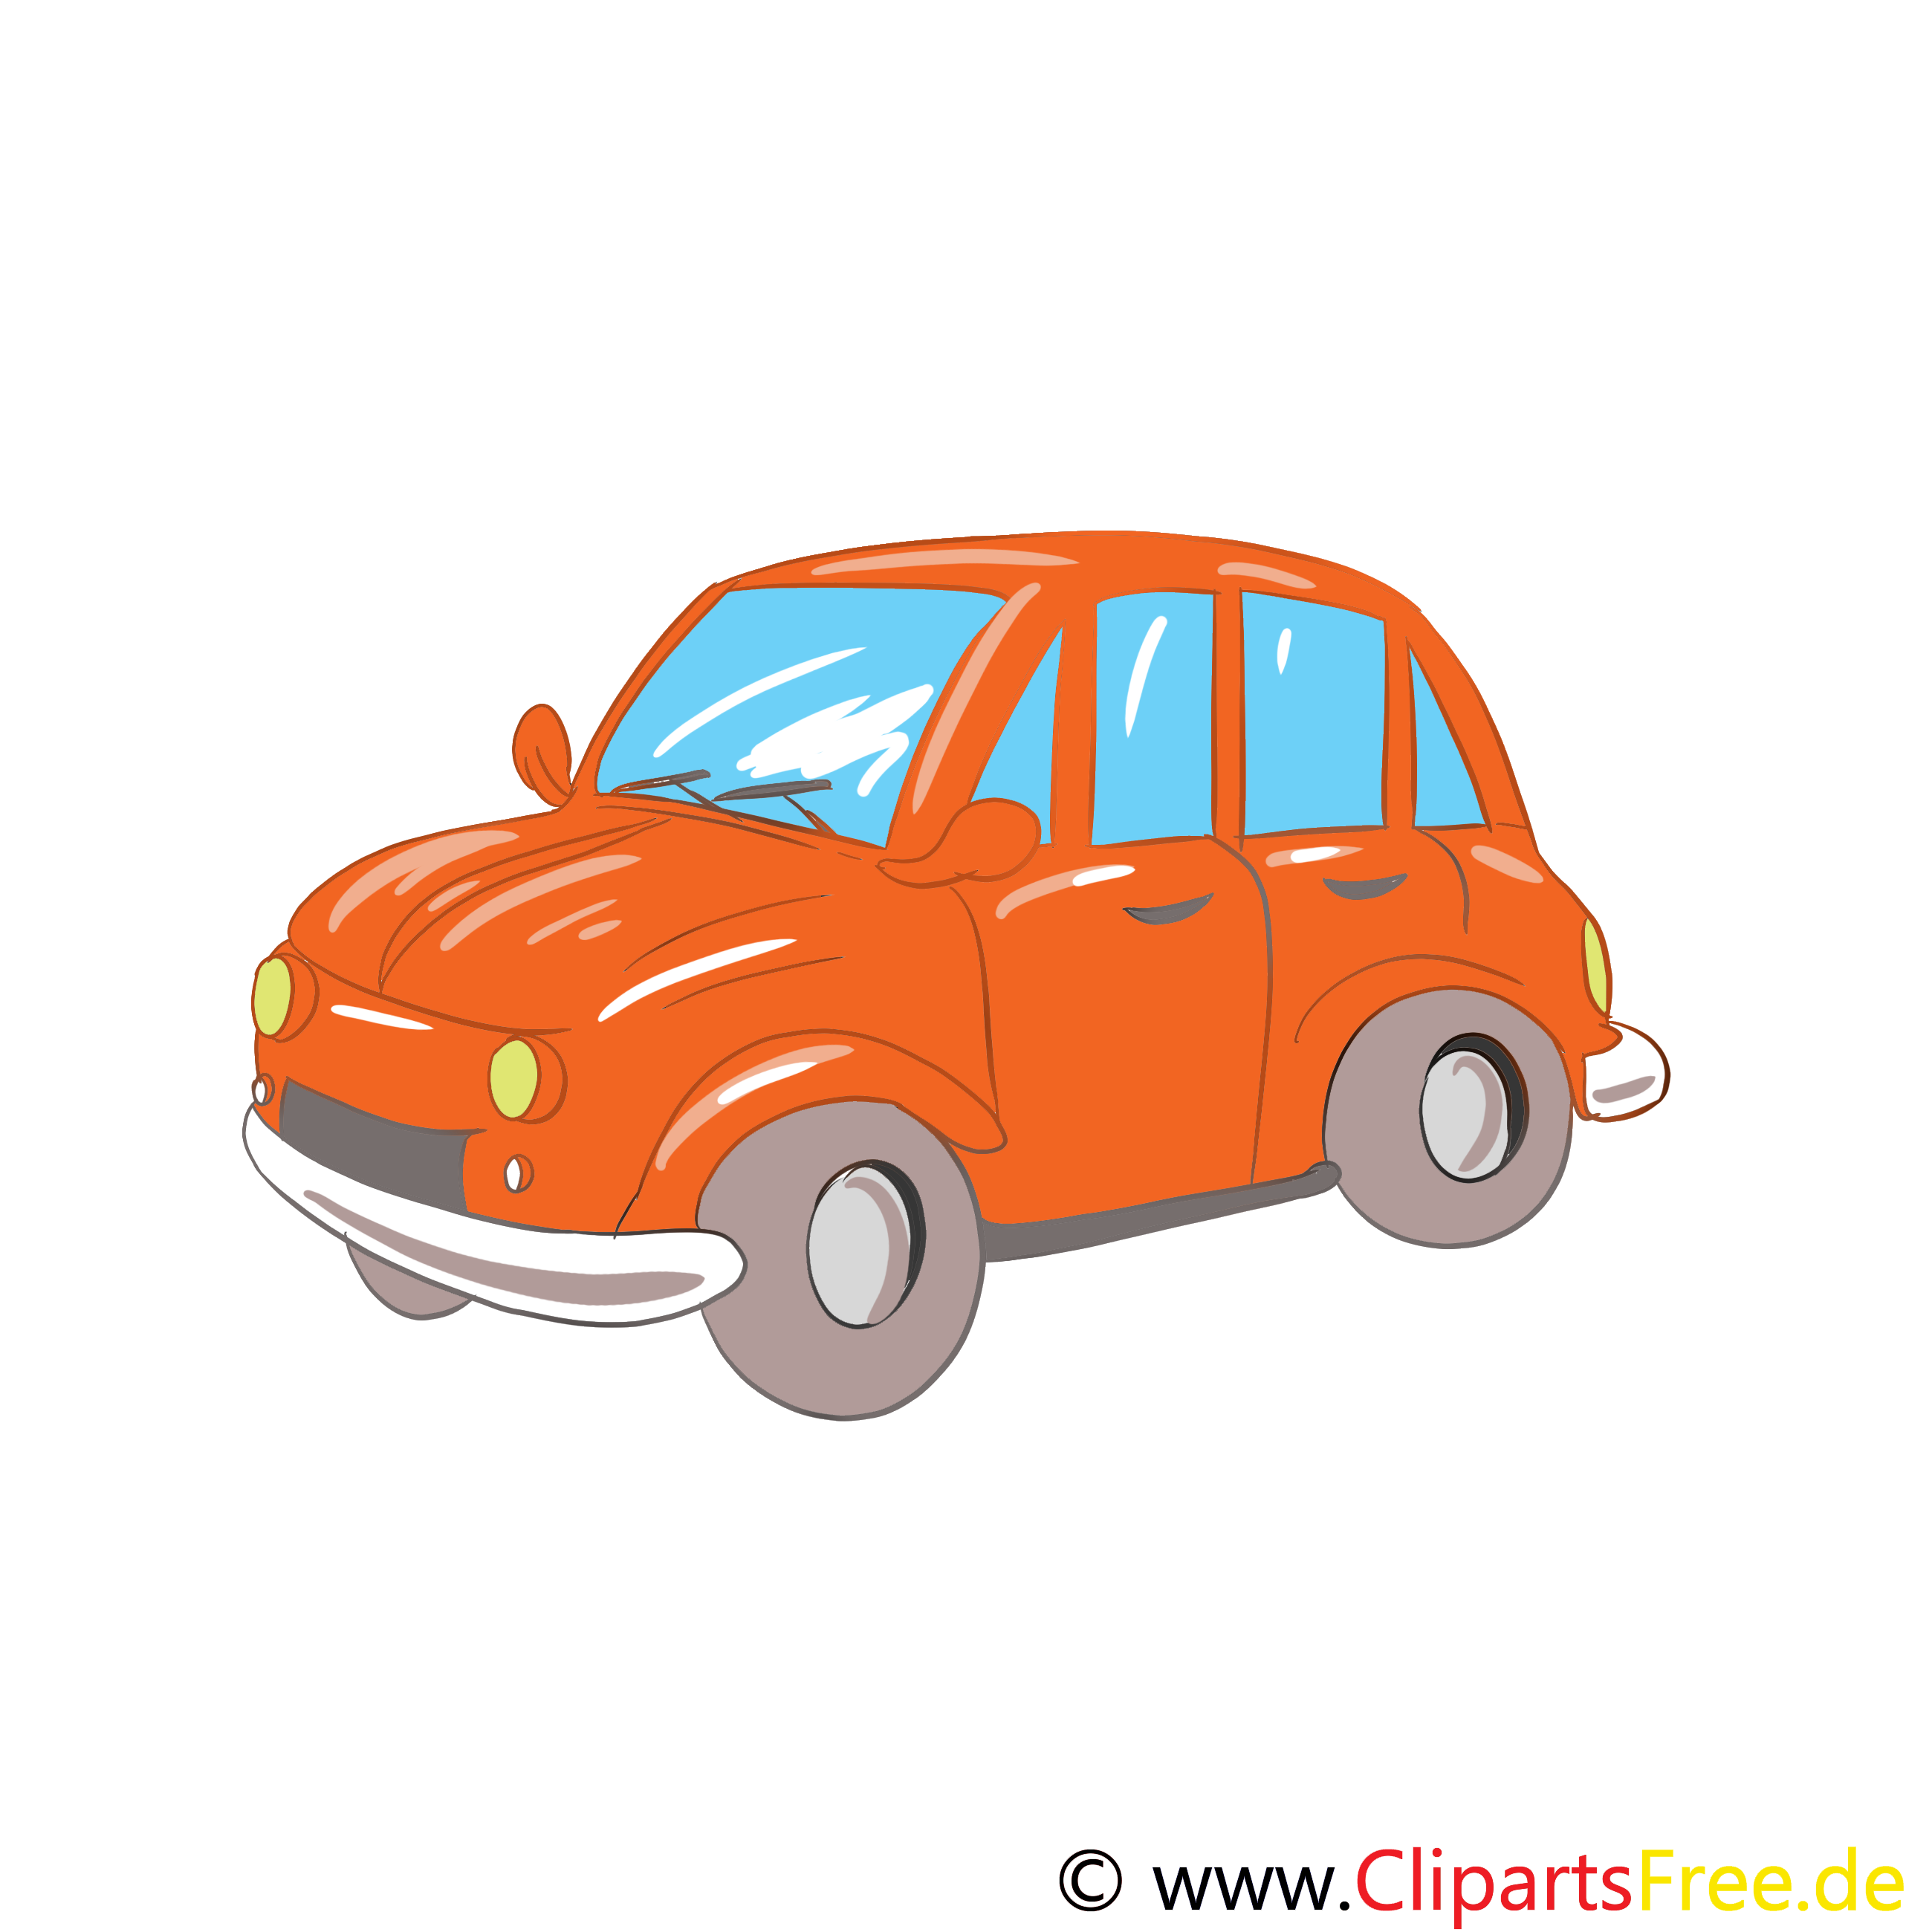 Voiture dessin gratuit t l charger voitures dessin picture image graphic clip art - Dessins gratuits a telecharger ...